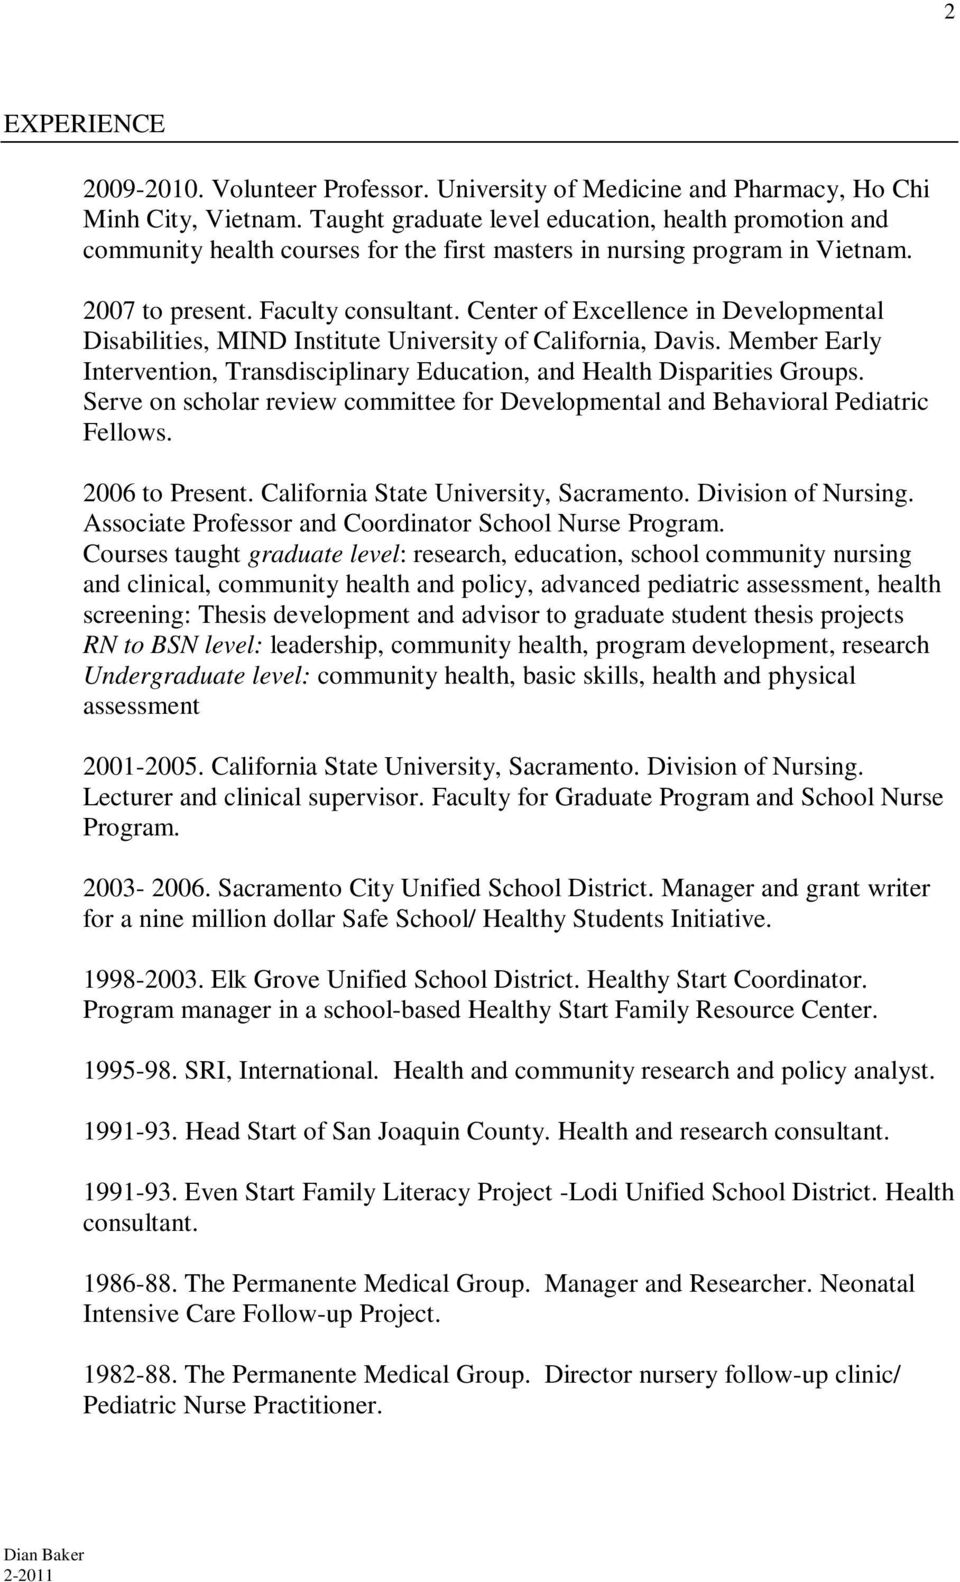 Center of Excellence in Developmental Disabilities, MIND Institute University of California, Davis. Member Early Intervention, Transdisciplinary Education, and Health Disparities Groups.